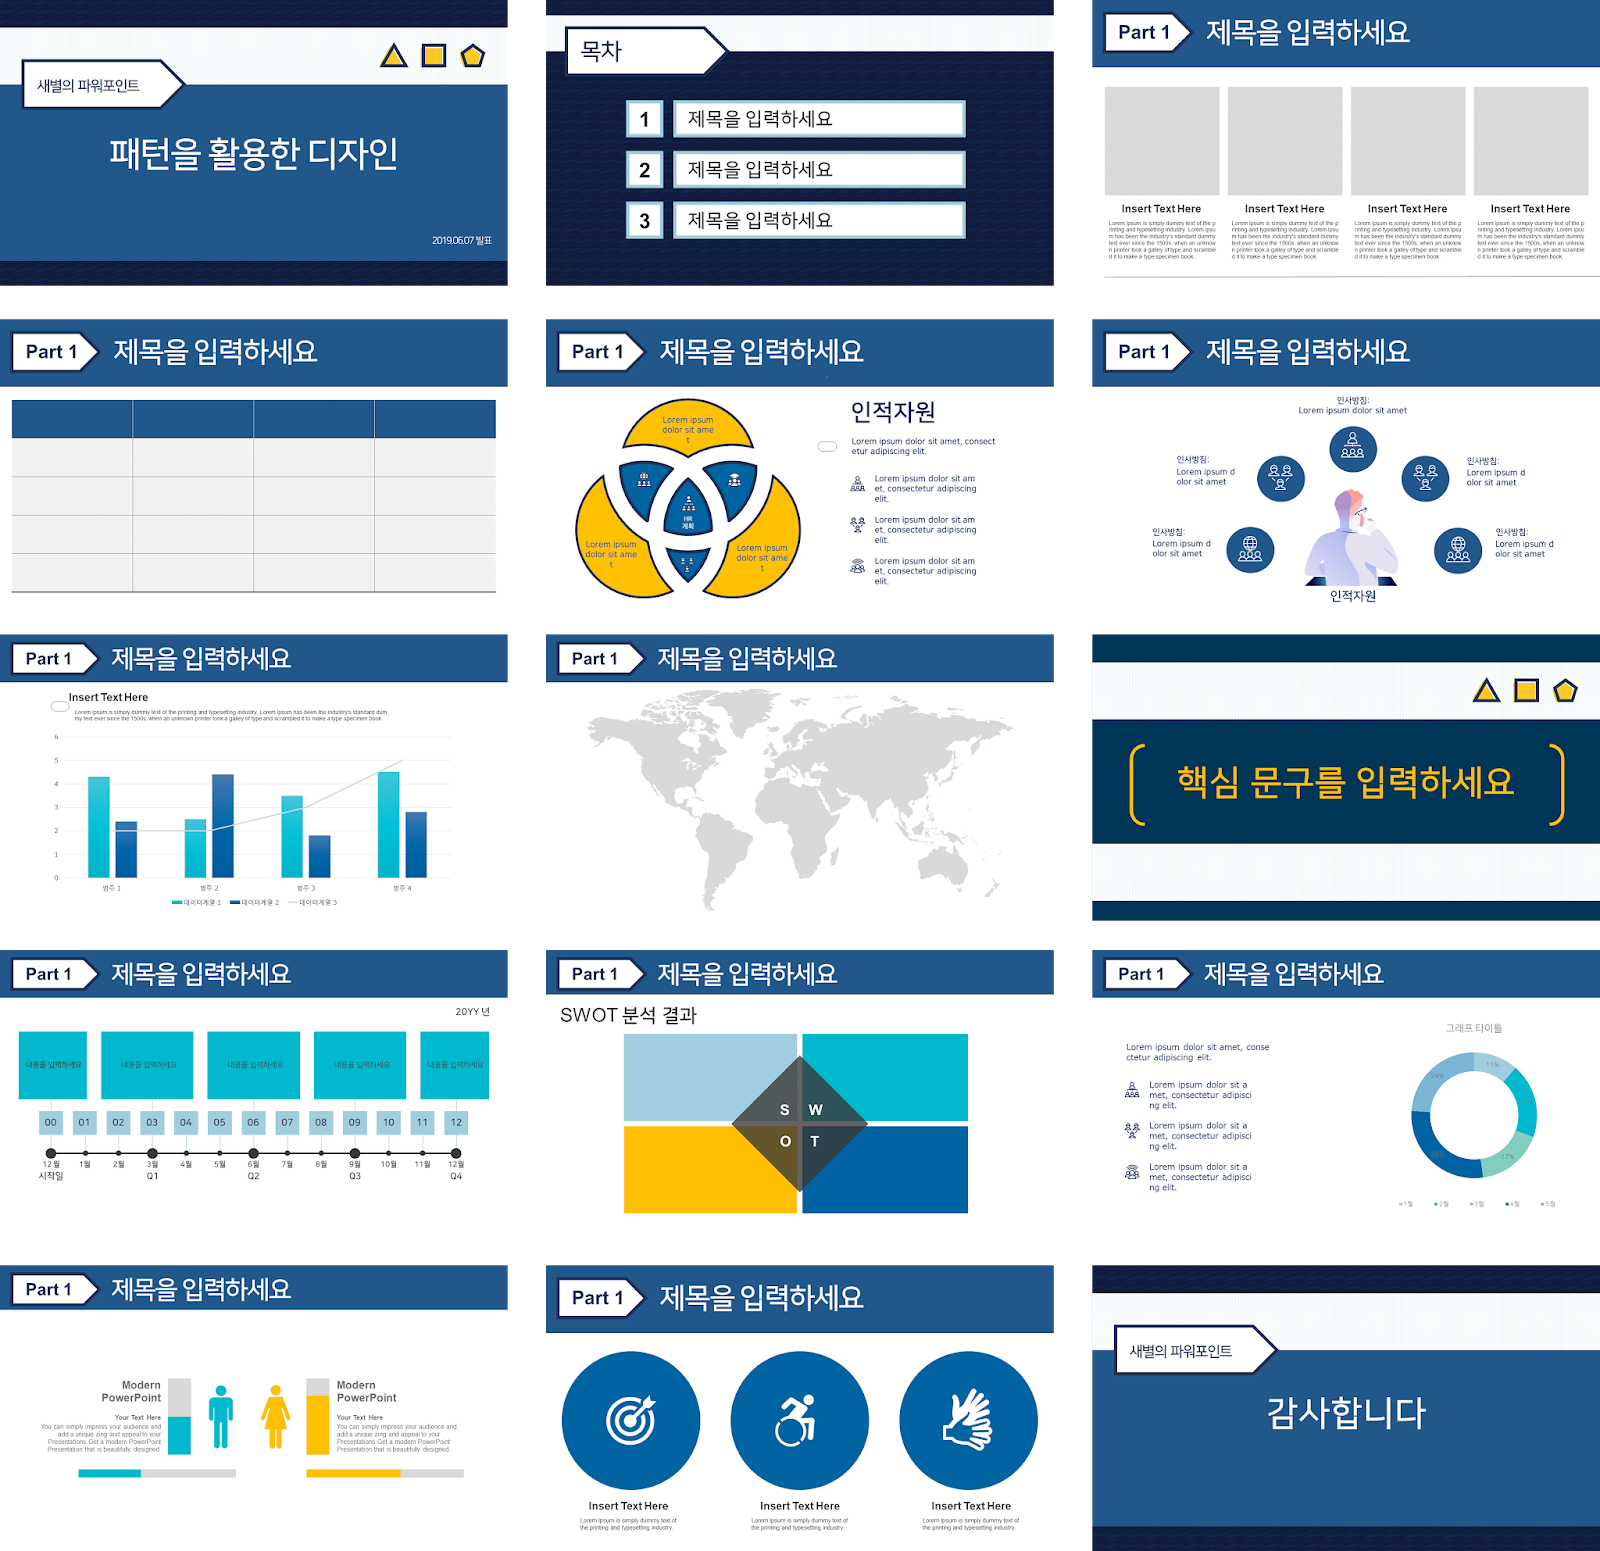 Free Powerpoint Backgrounds Templates: [Free PowerPoint Template Download] 패턴을 이용한 깔끔한 파란색 PPT